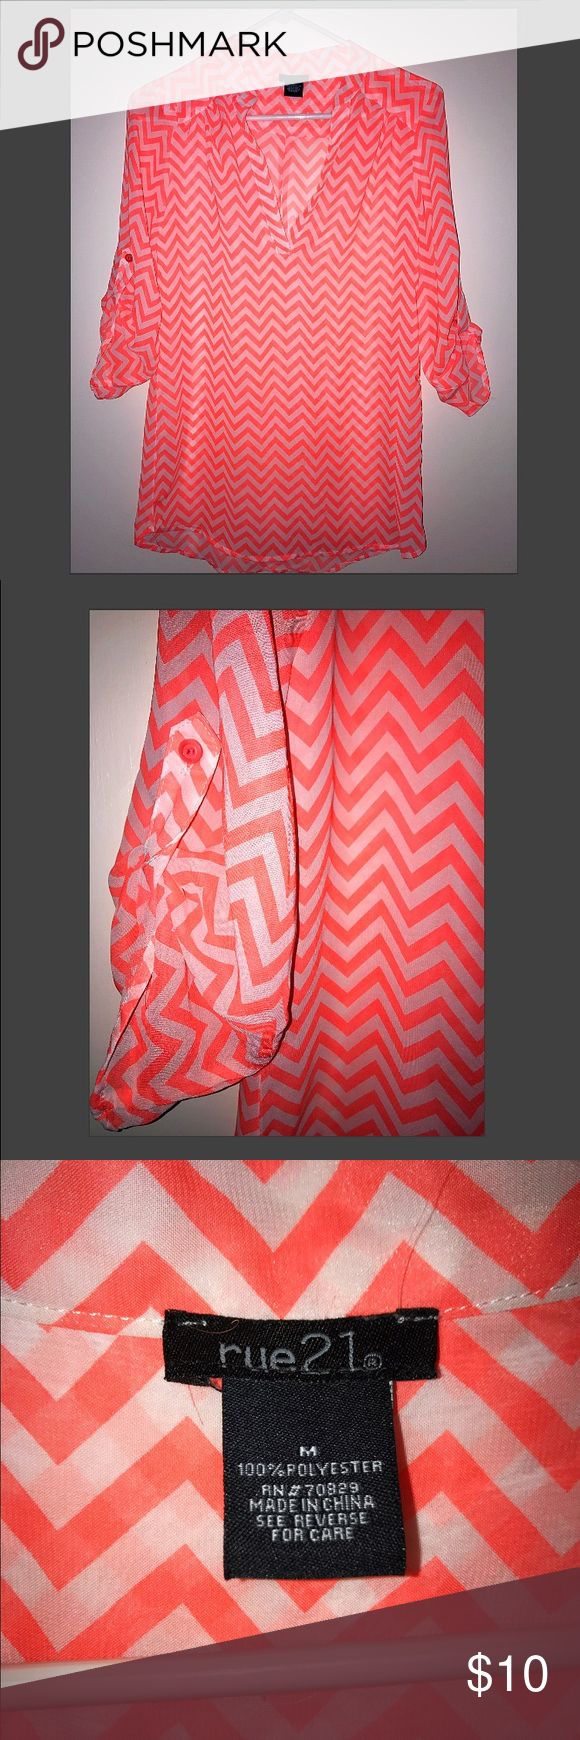 Sheer Chevron Blouse Sz M 🔥❤️Bundle and Offer, NO offer is no considered 😘 Tops Blouses